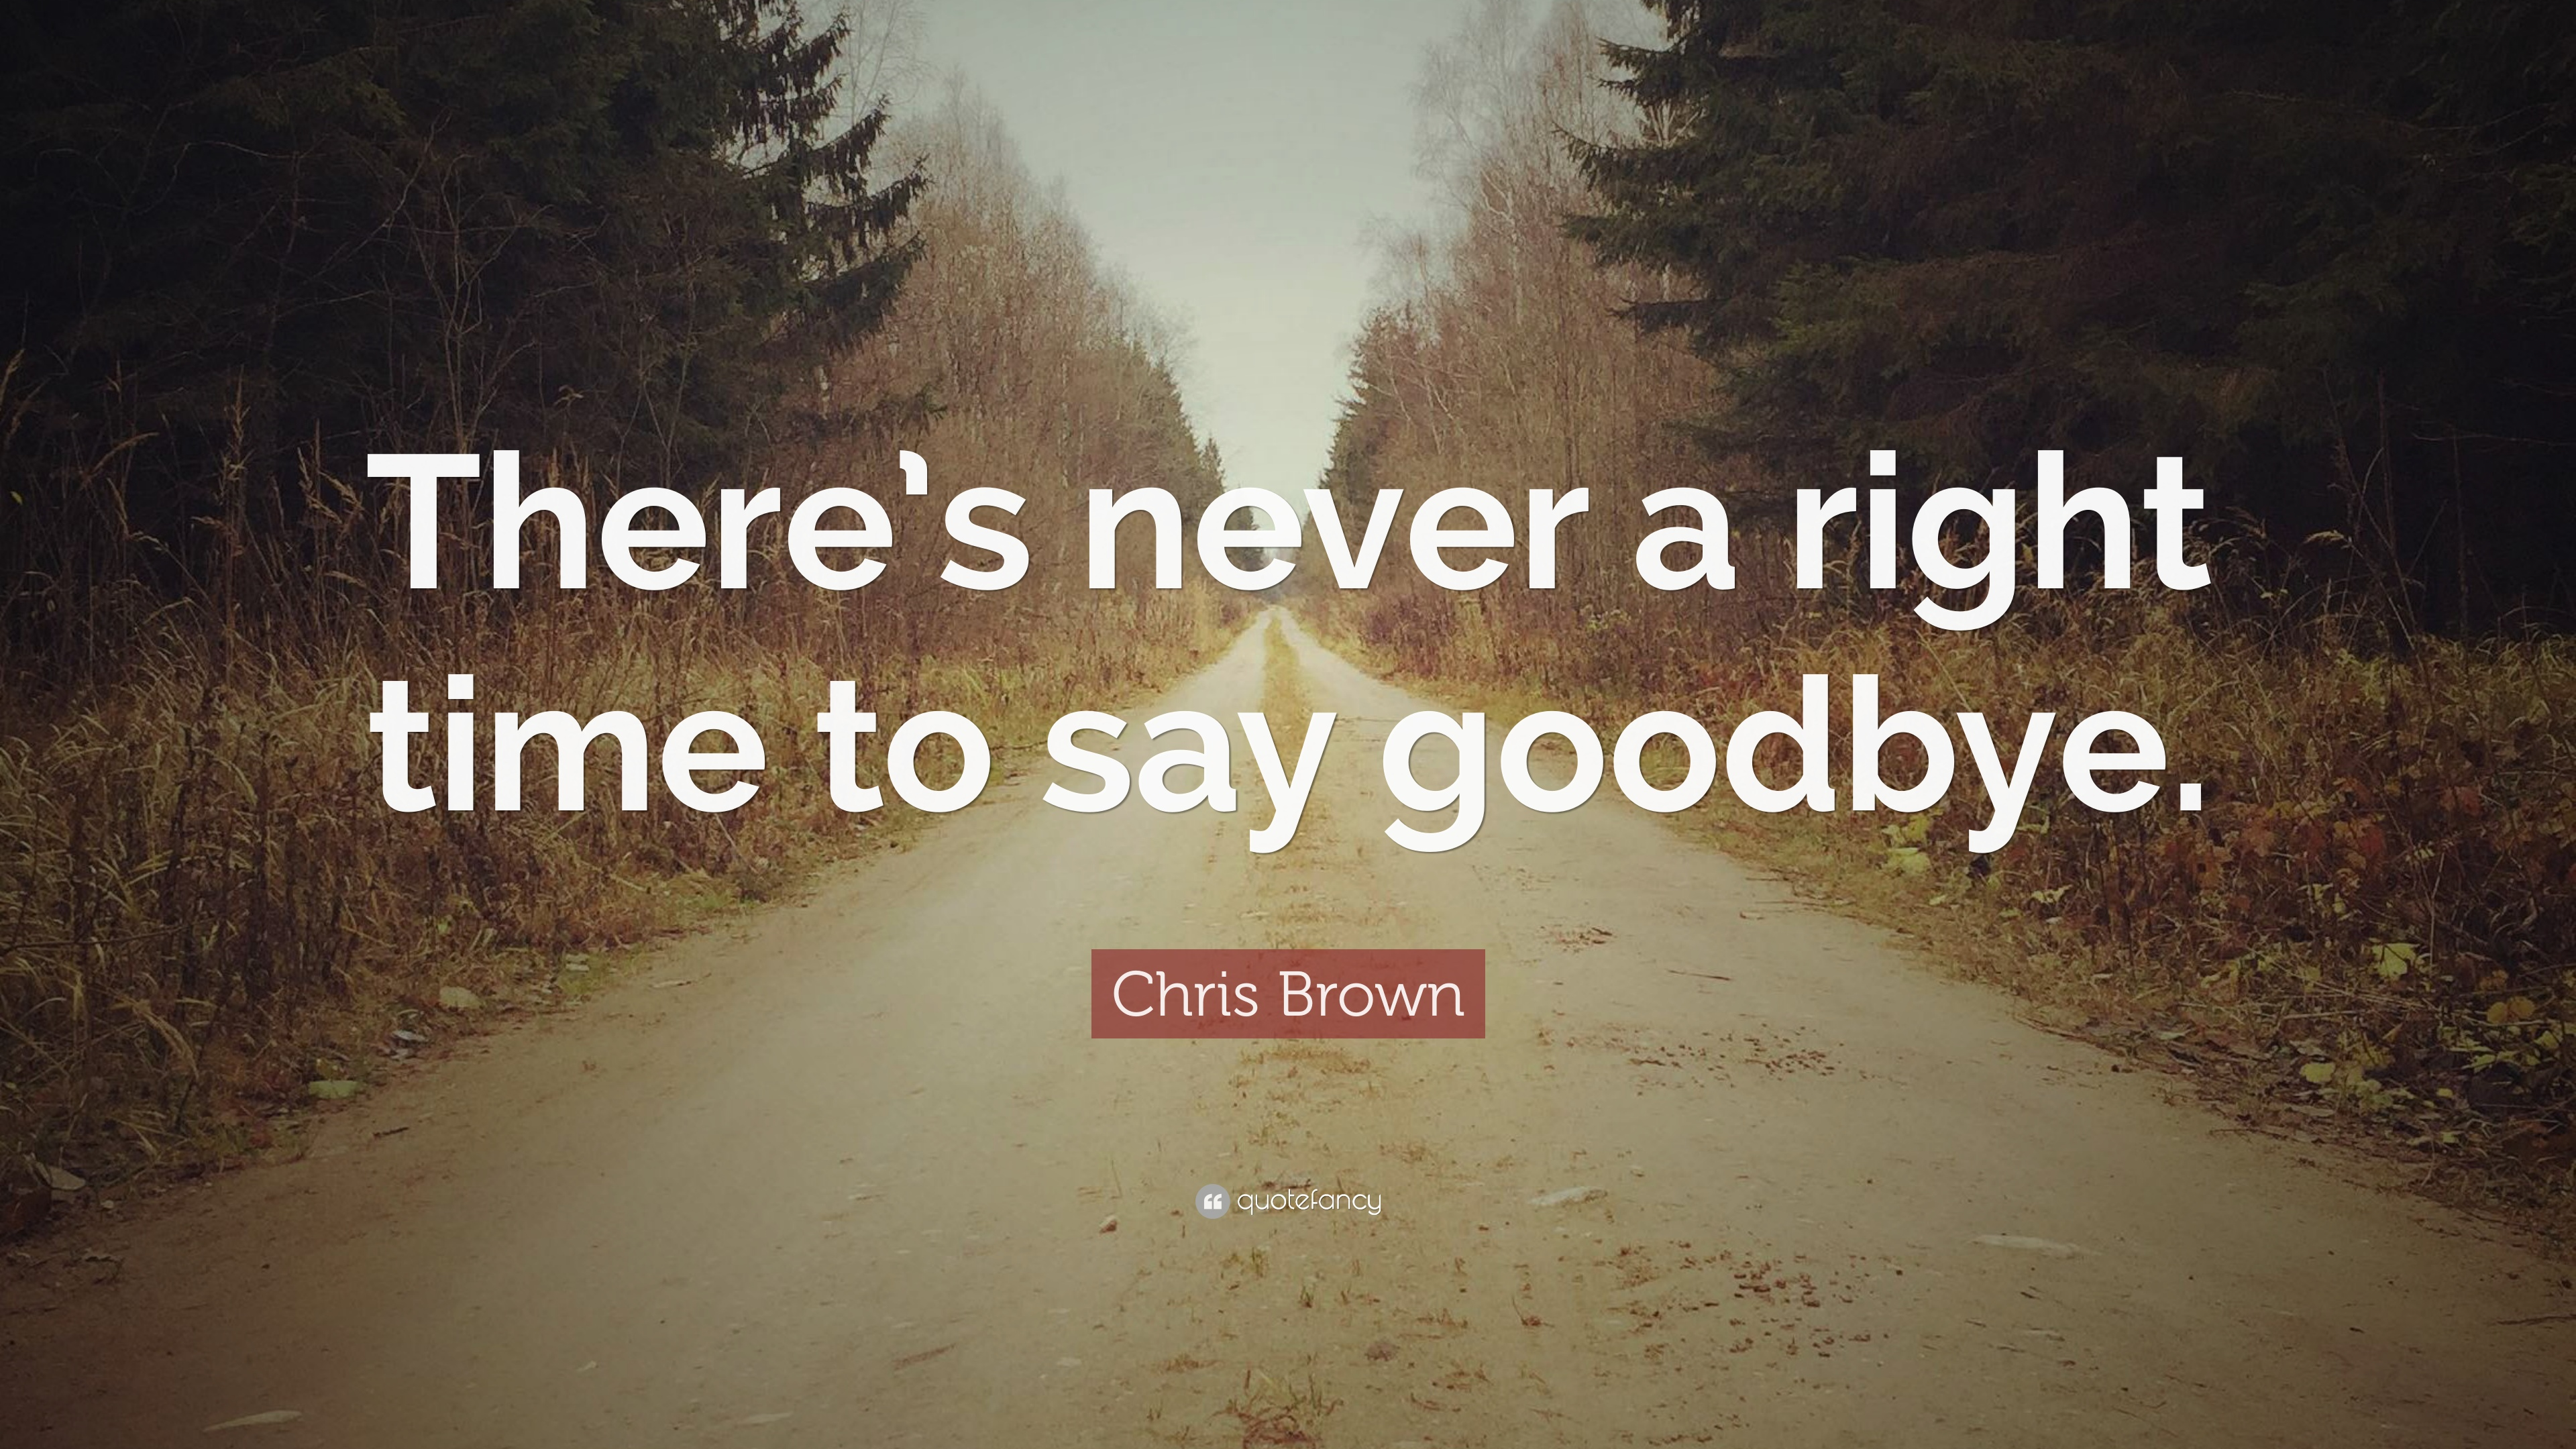 Chris Brown Quote: Theres never a right time to say